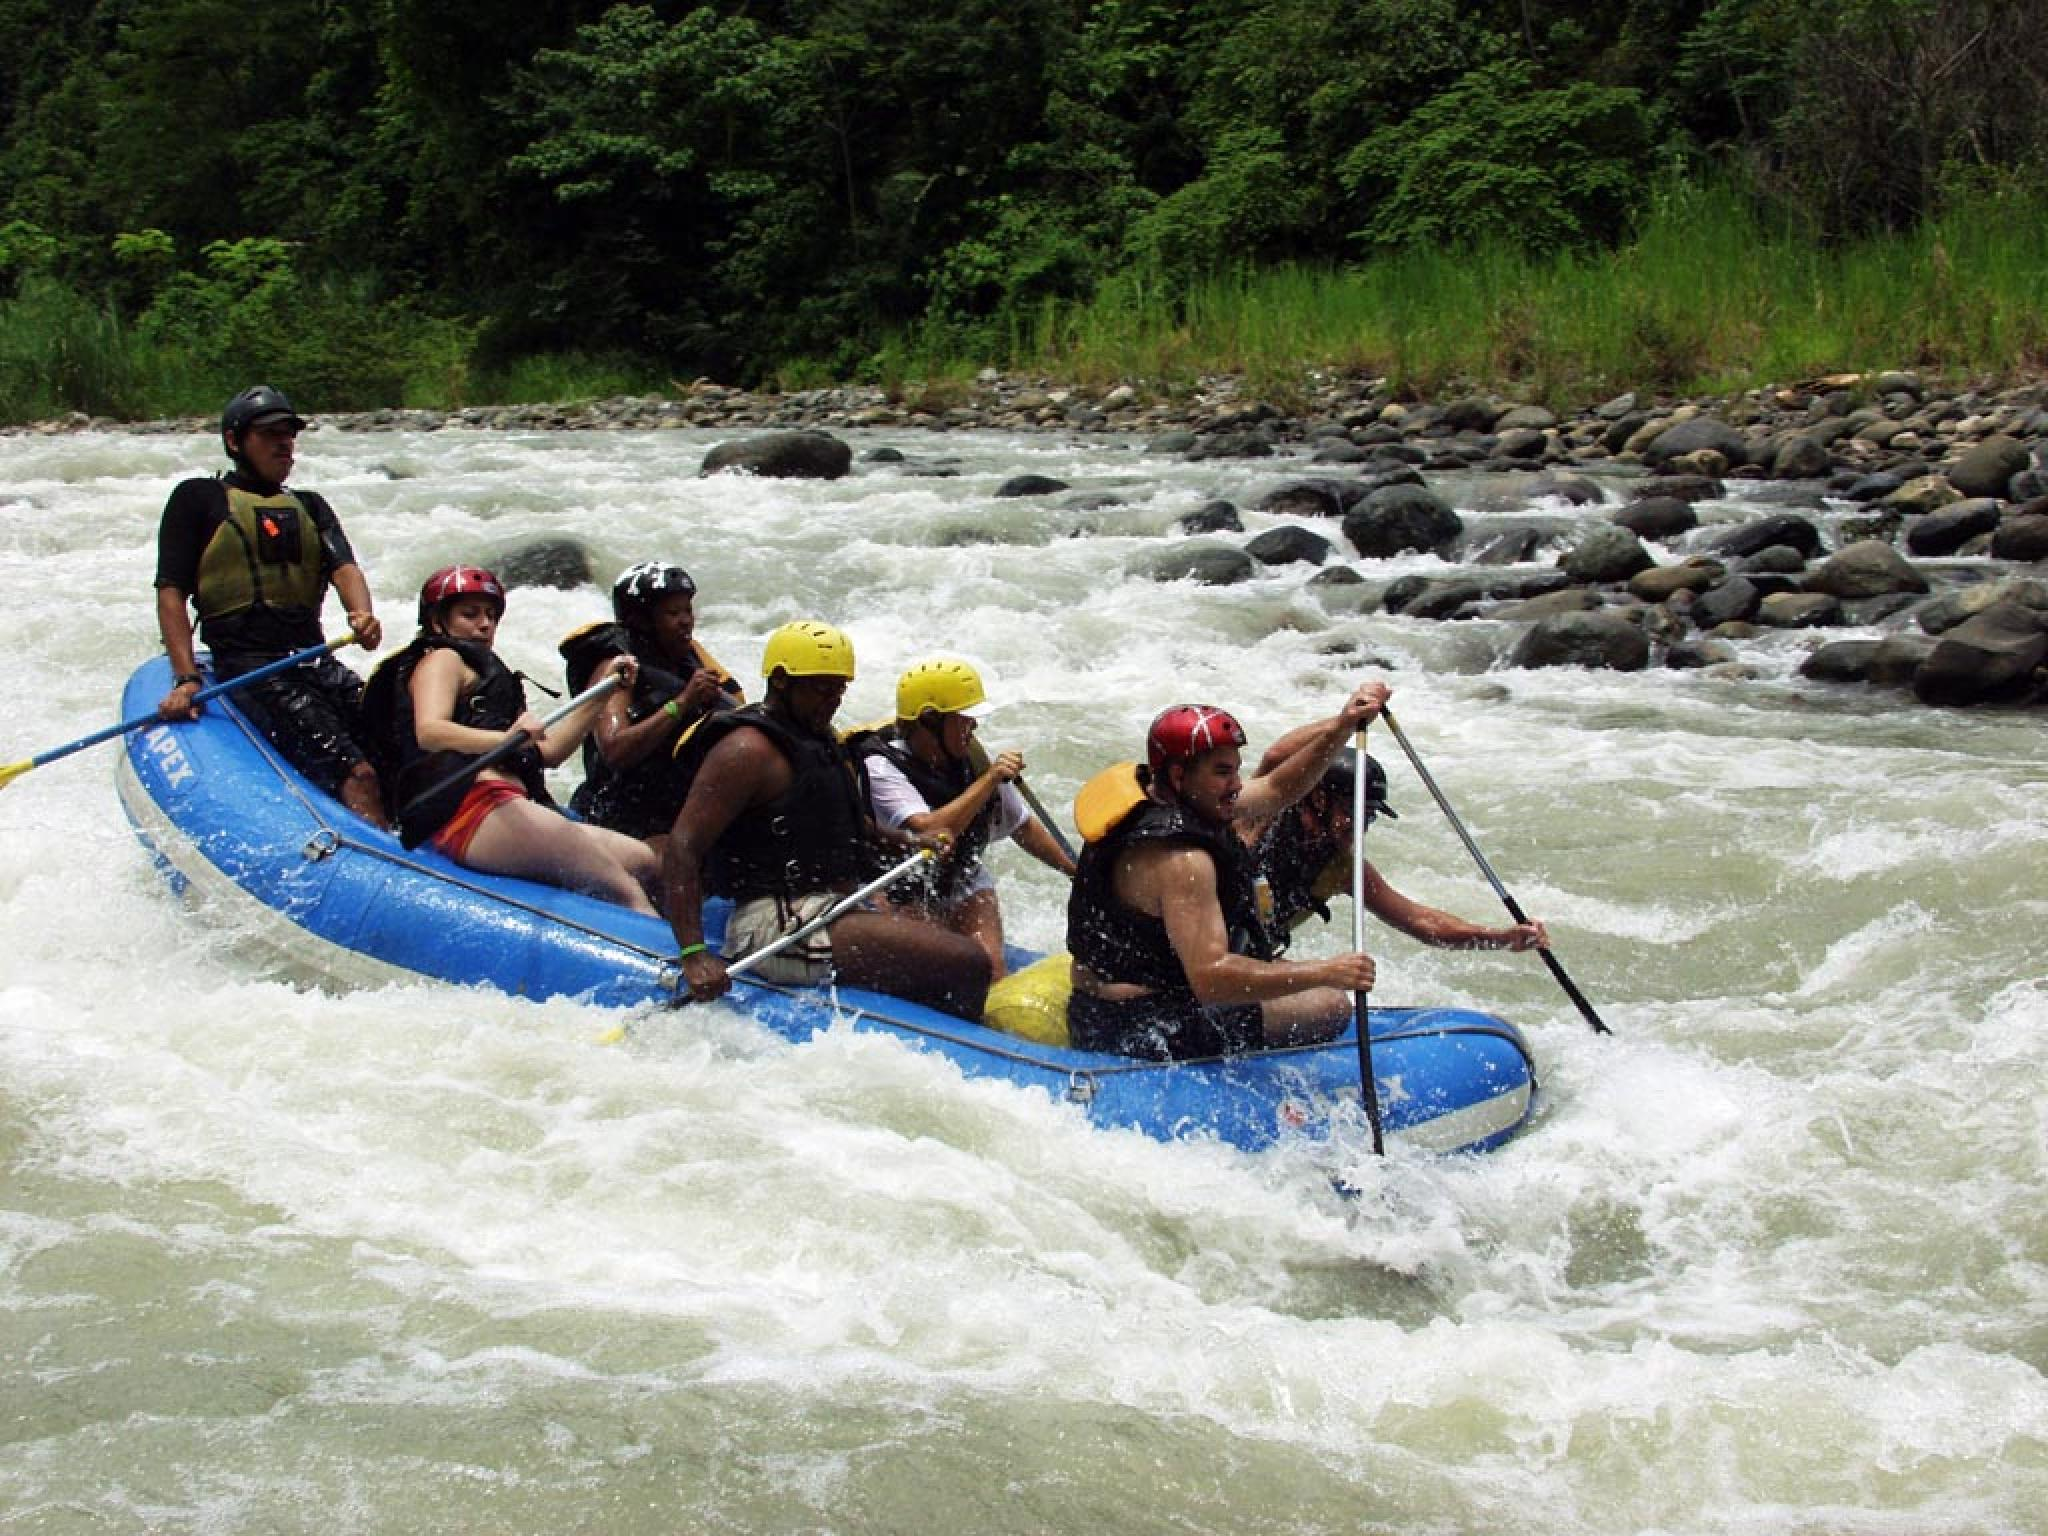 Rafting on the Savegre River